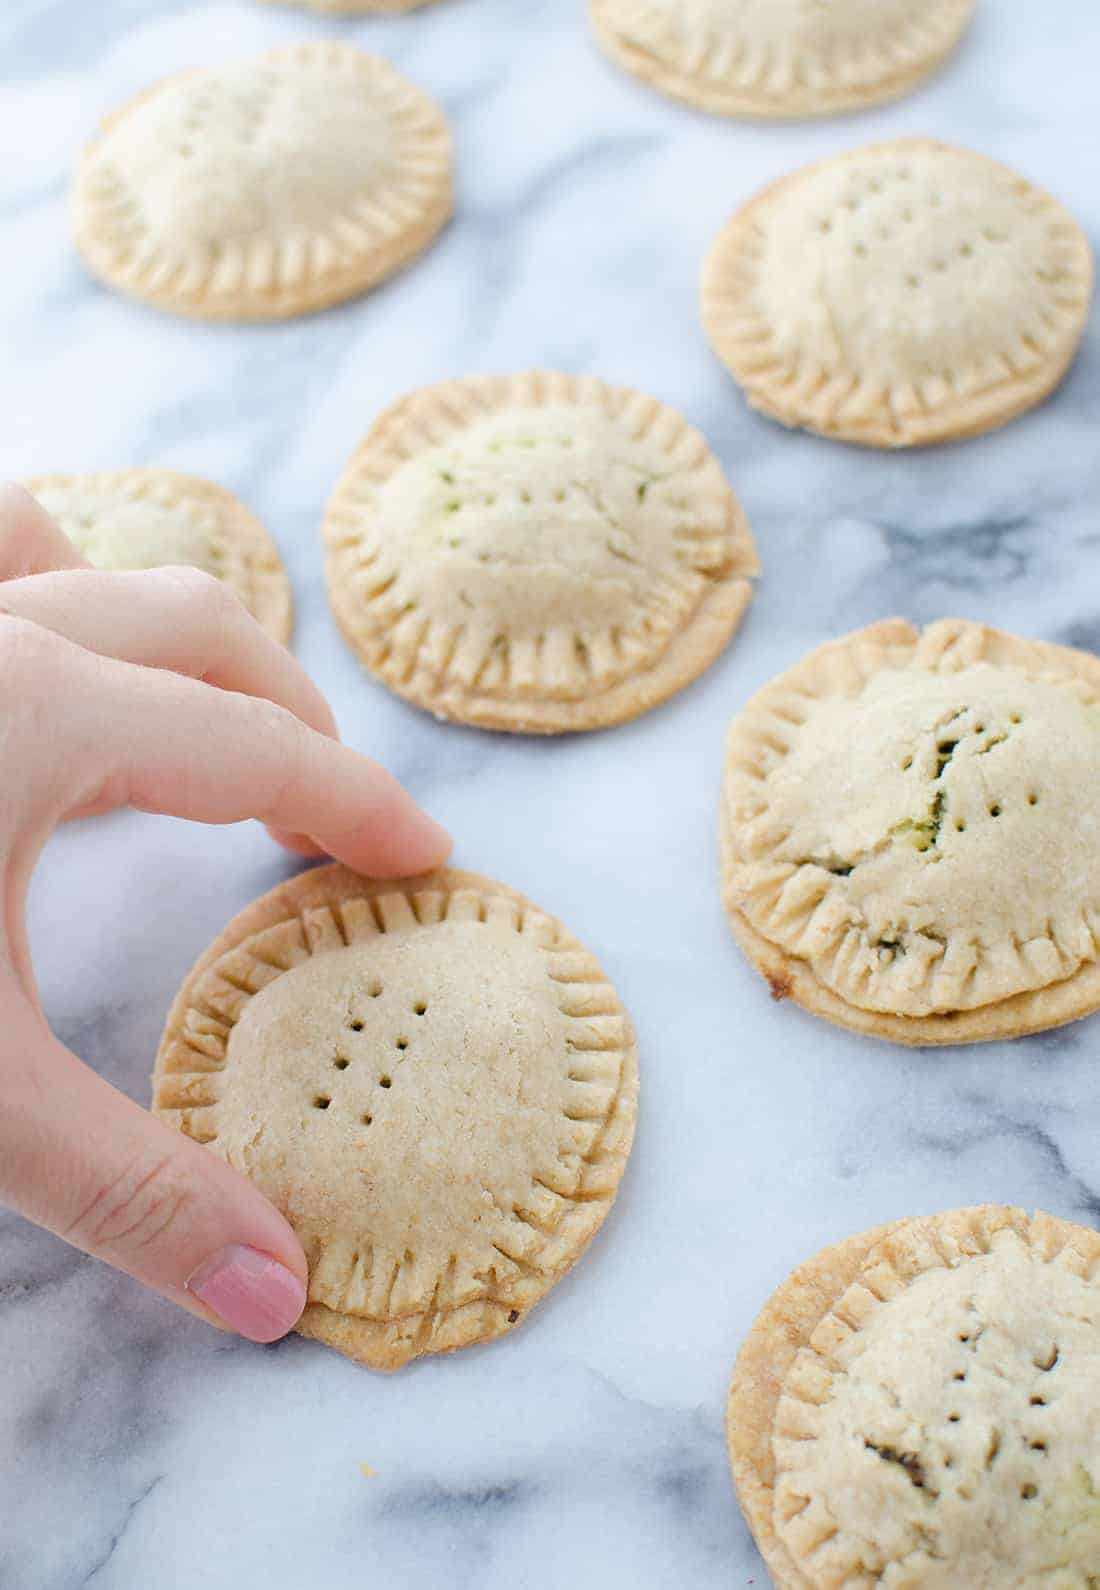 Lentil Hand Pies with Walnut Pesto! Lentil salad stuffed into homemade pie crust. Perfect for picnics, potlucks or lunches! #vegan | www.delishknowledge.com